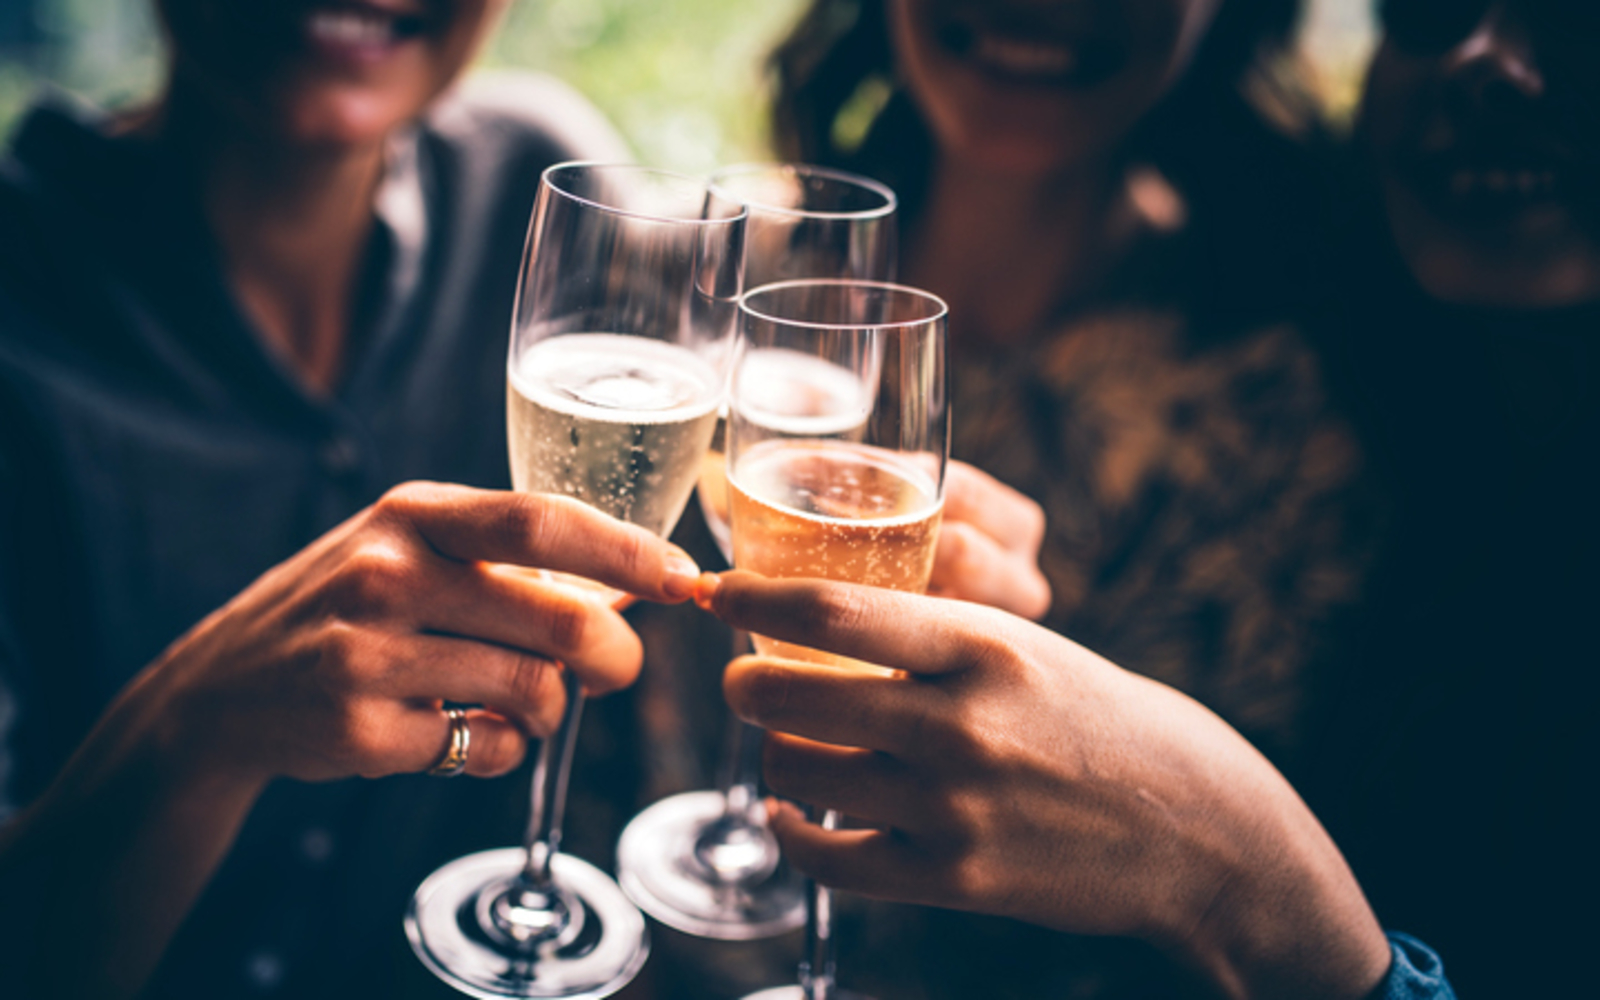 Potato chips and prosecco: the priest who takes the faithful by the throat